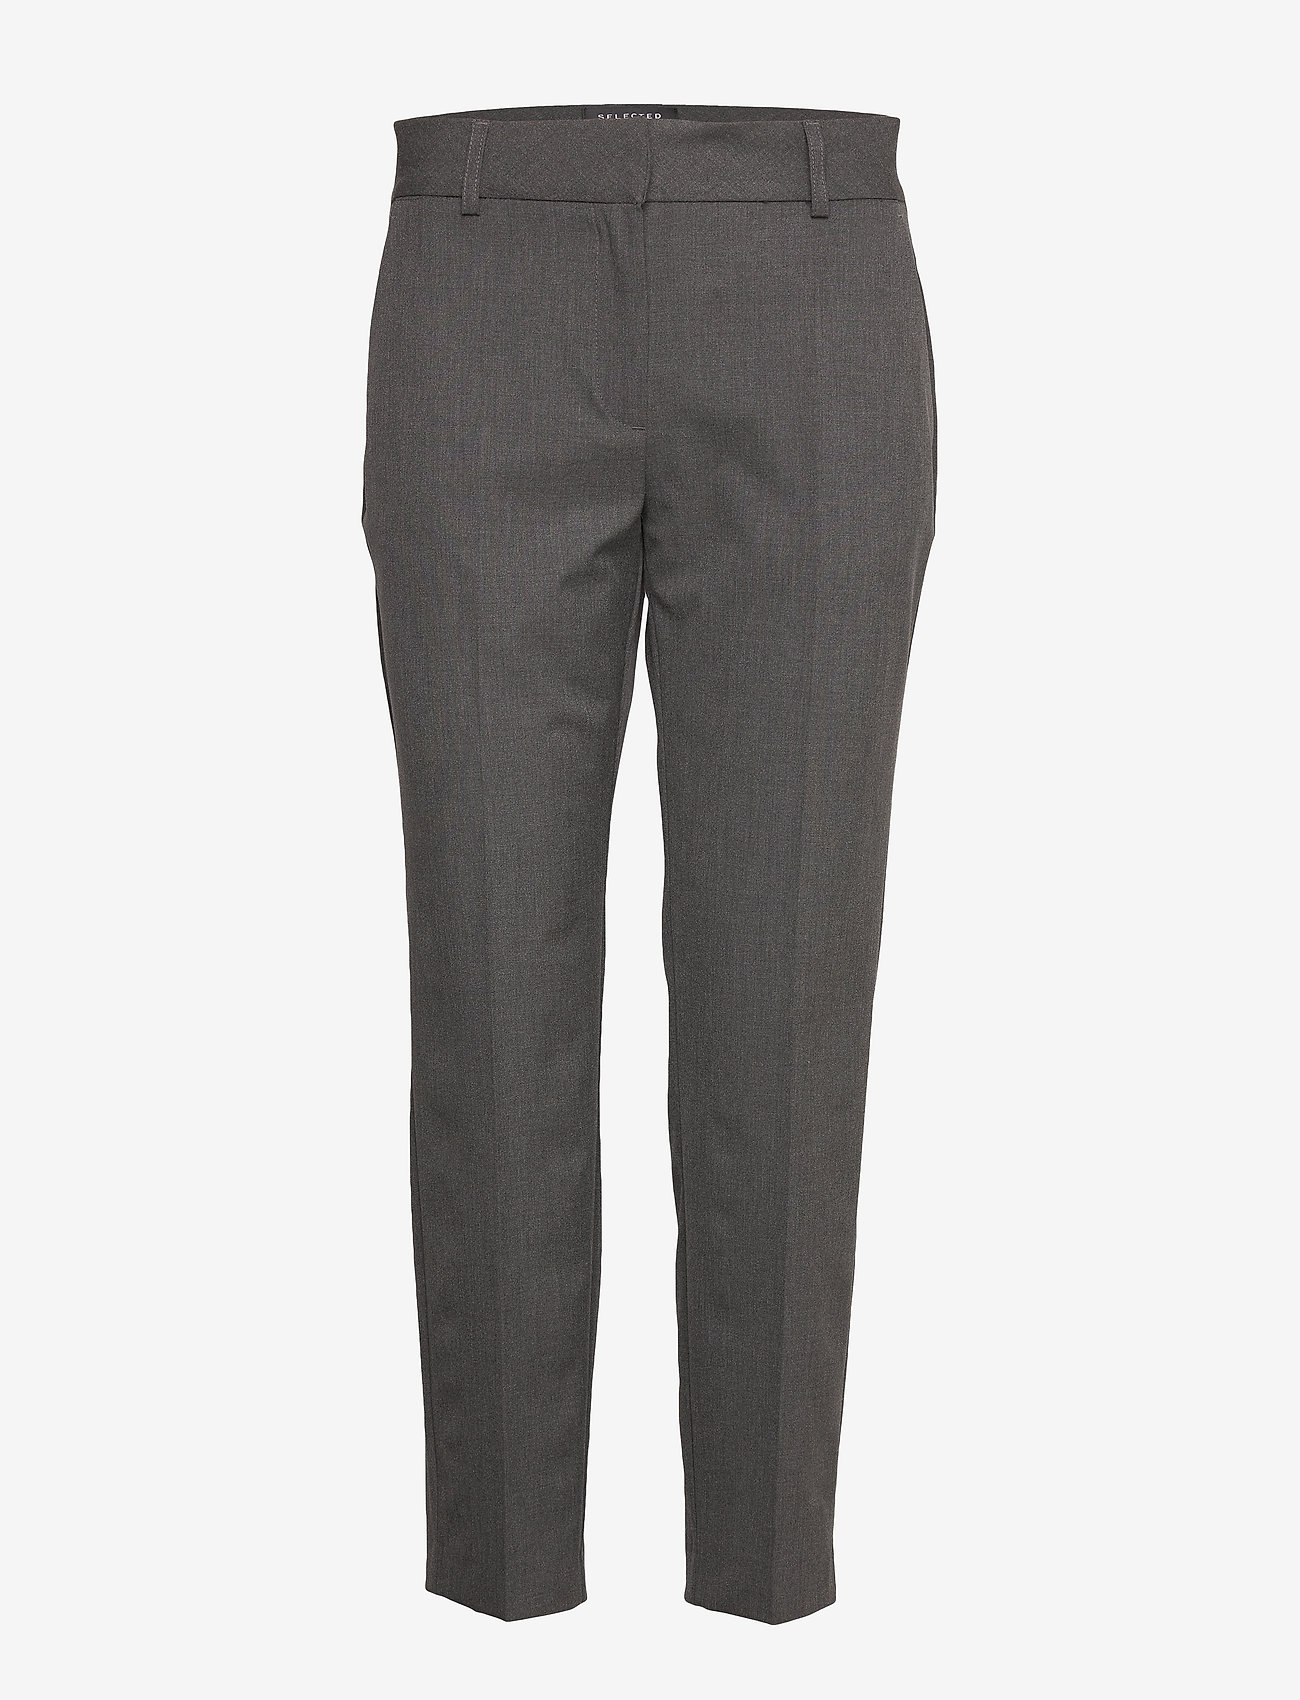 Selected Femme - SLFRIA MW CROPPED PANT DGM B NOOS - straight leg trousers - dark grey melange - 0